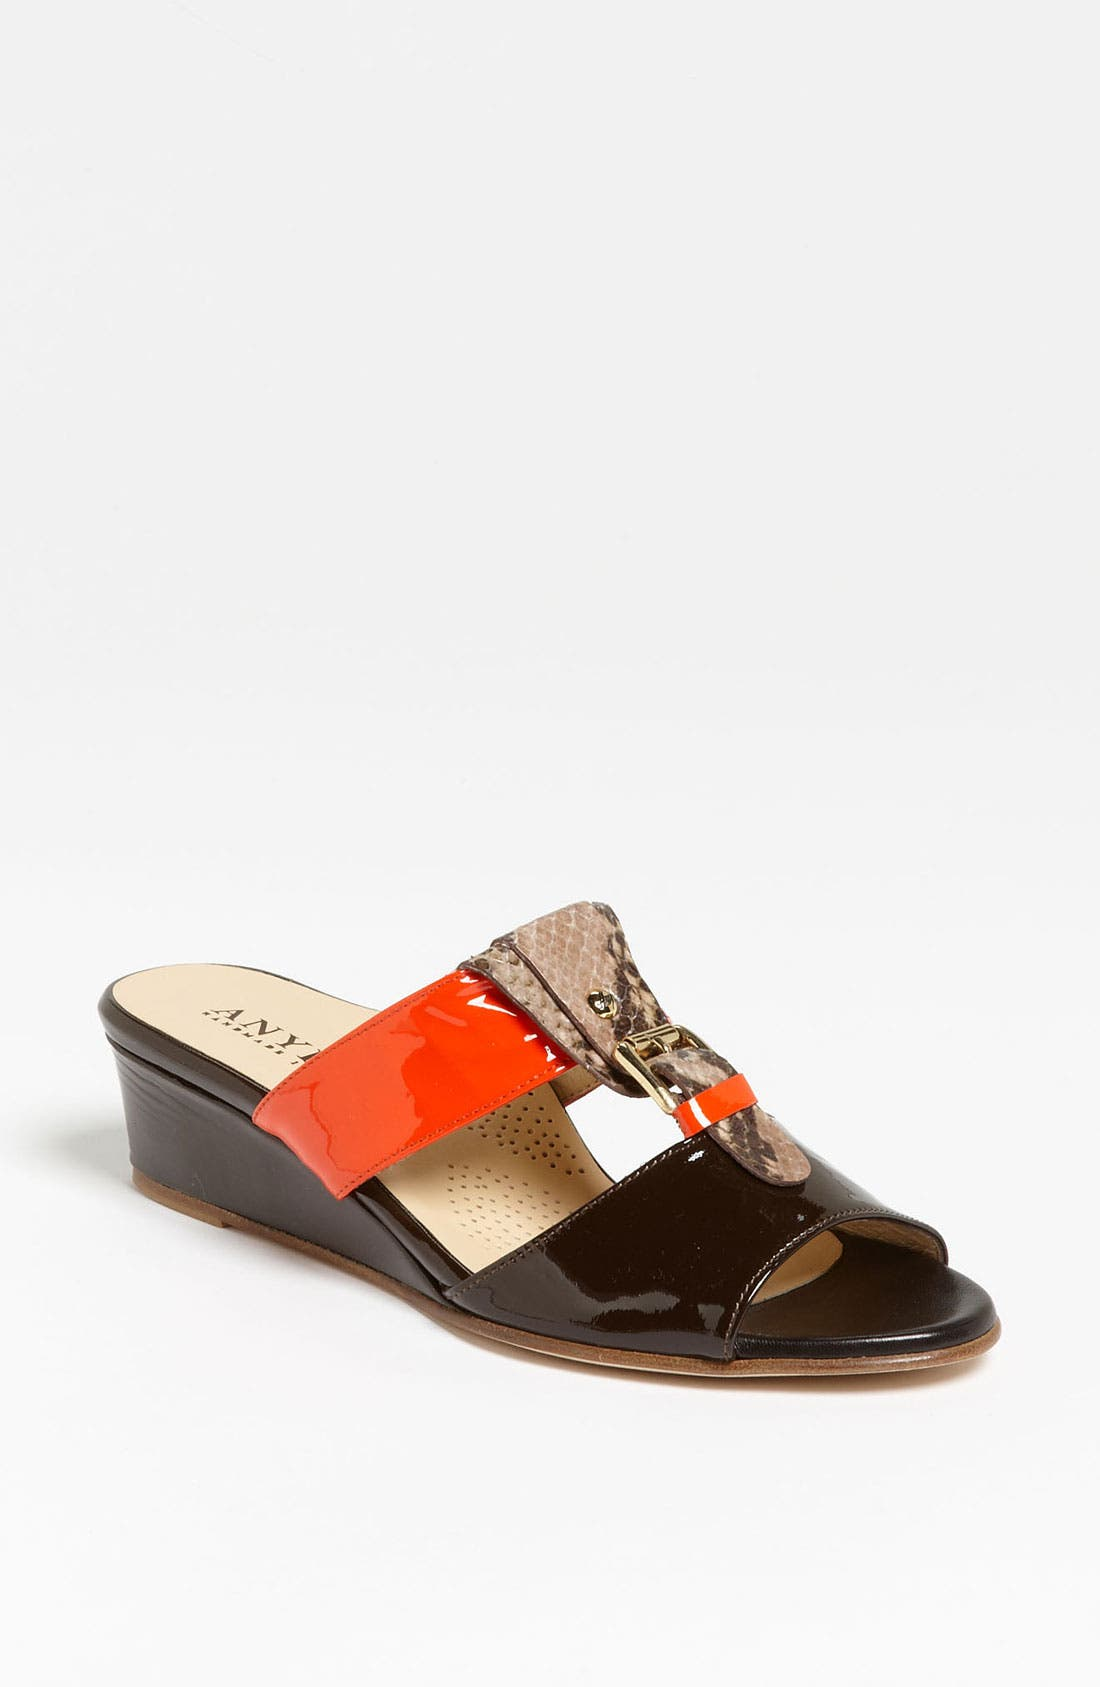 Alternate Image 1 Selected - Anyi Lu 'Lucy' Sandal